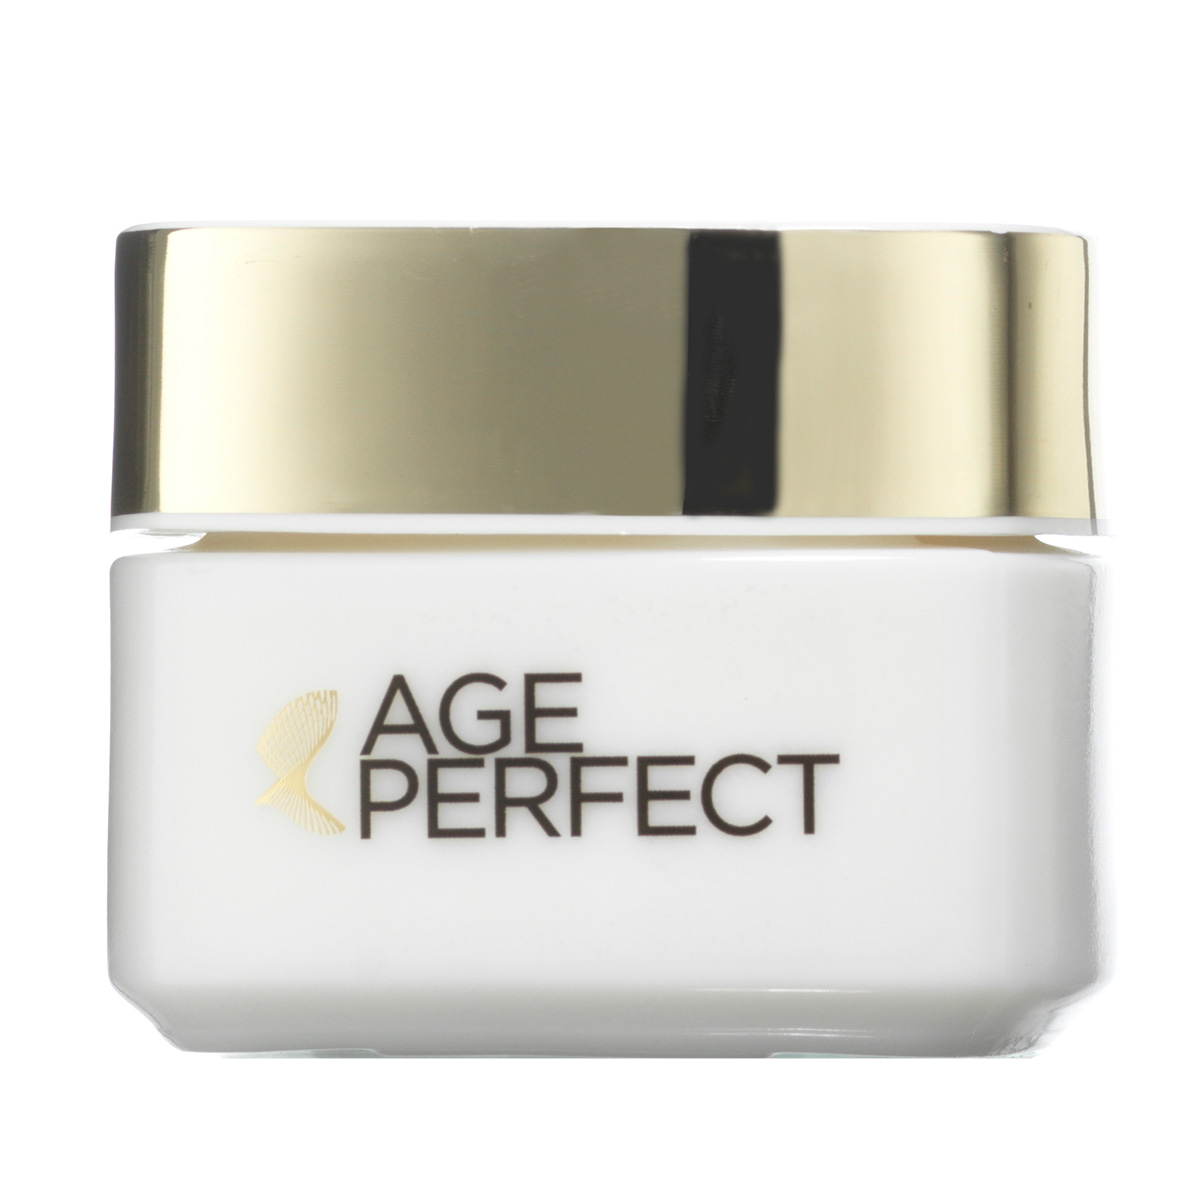 L'Oréal Paris Age Perfect Moisturising Day Care - 50 ml Dagcreme til moden hud